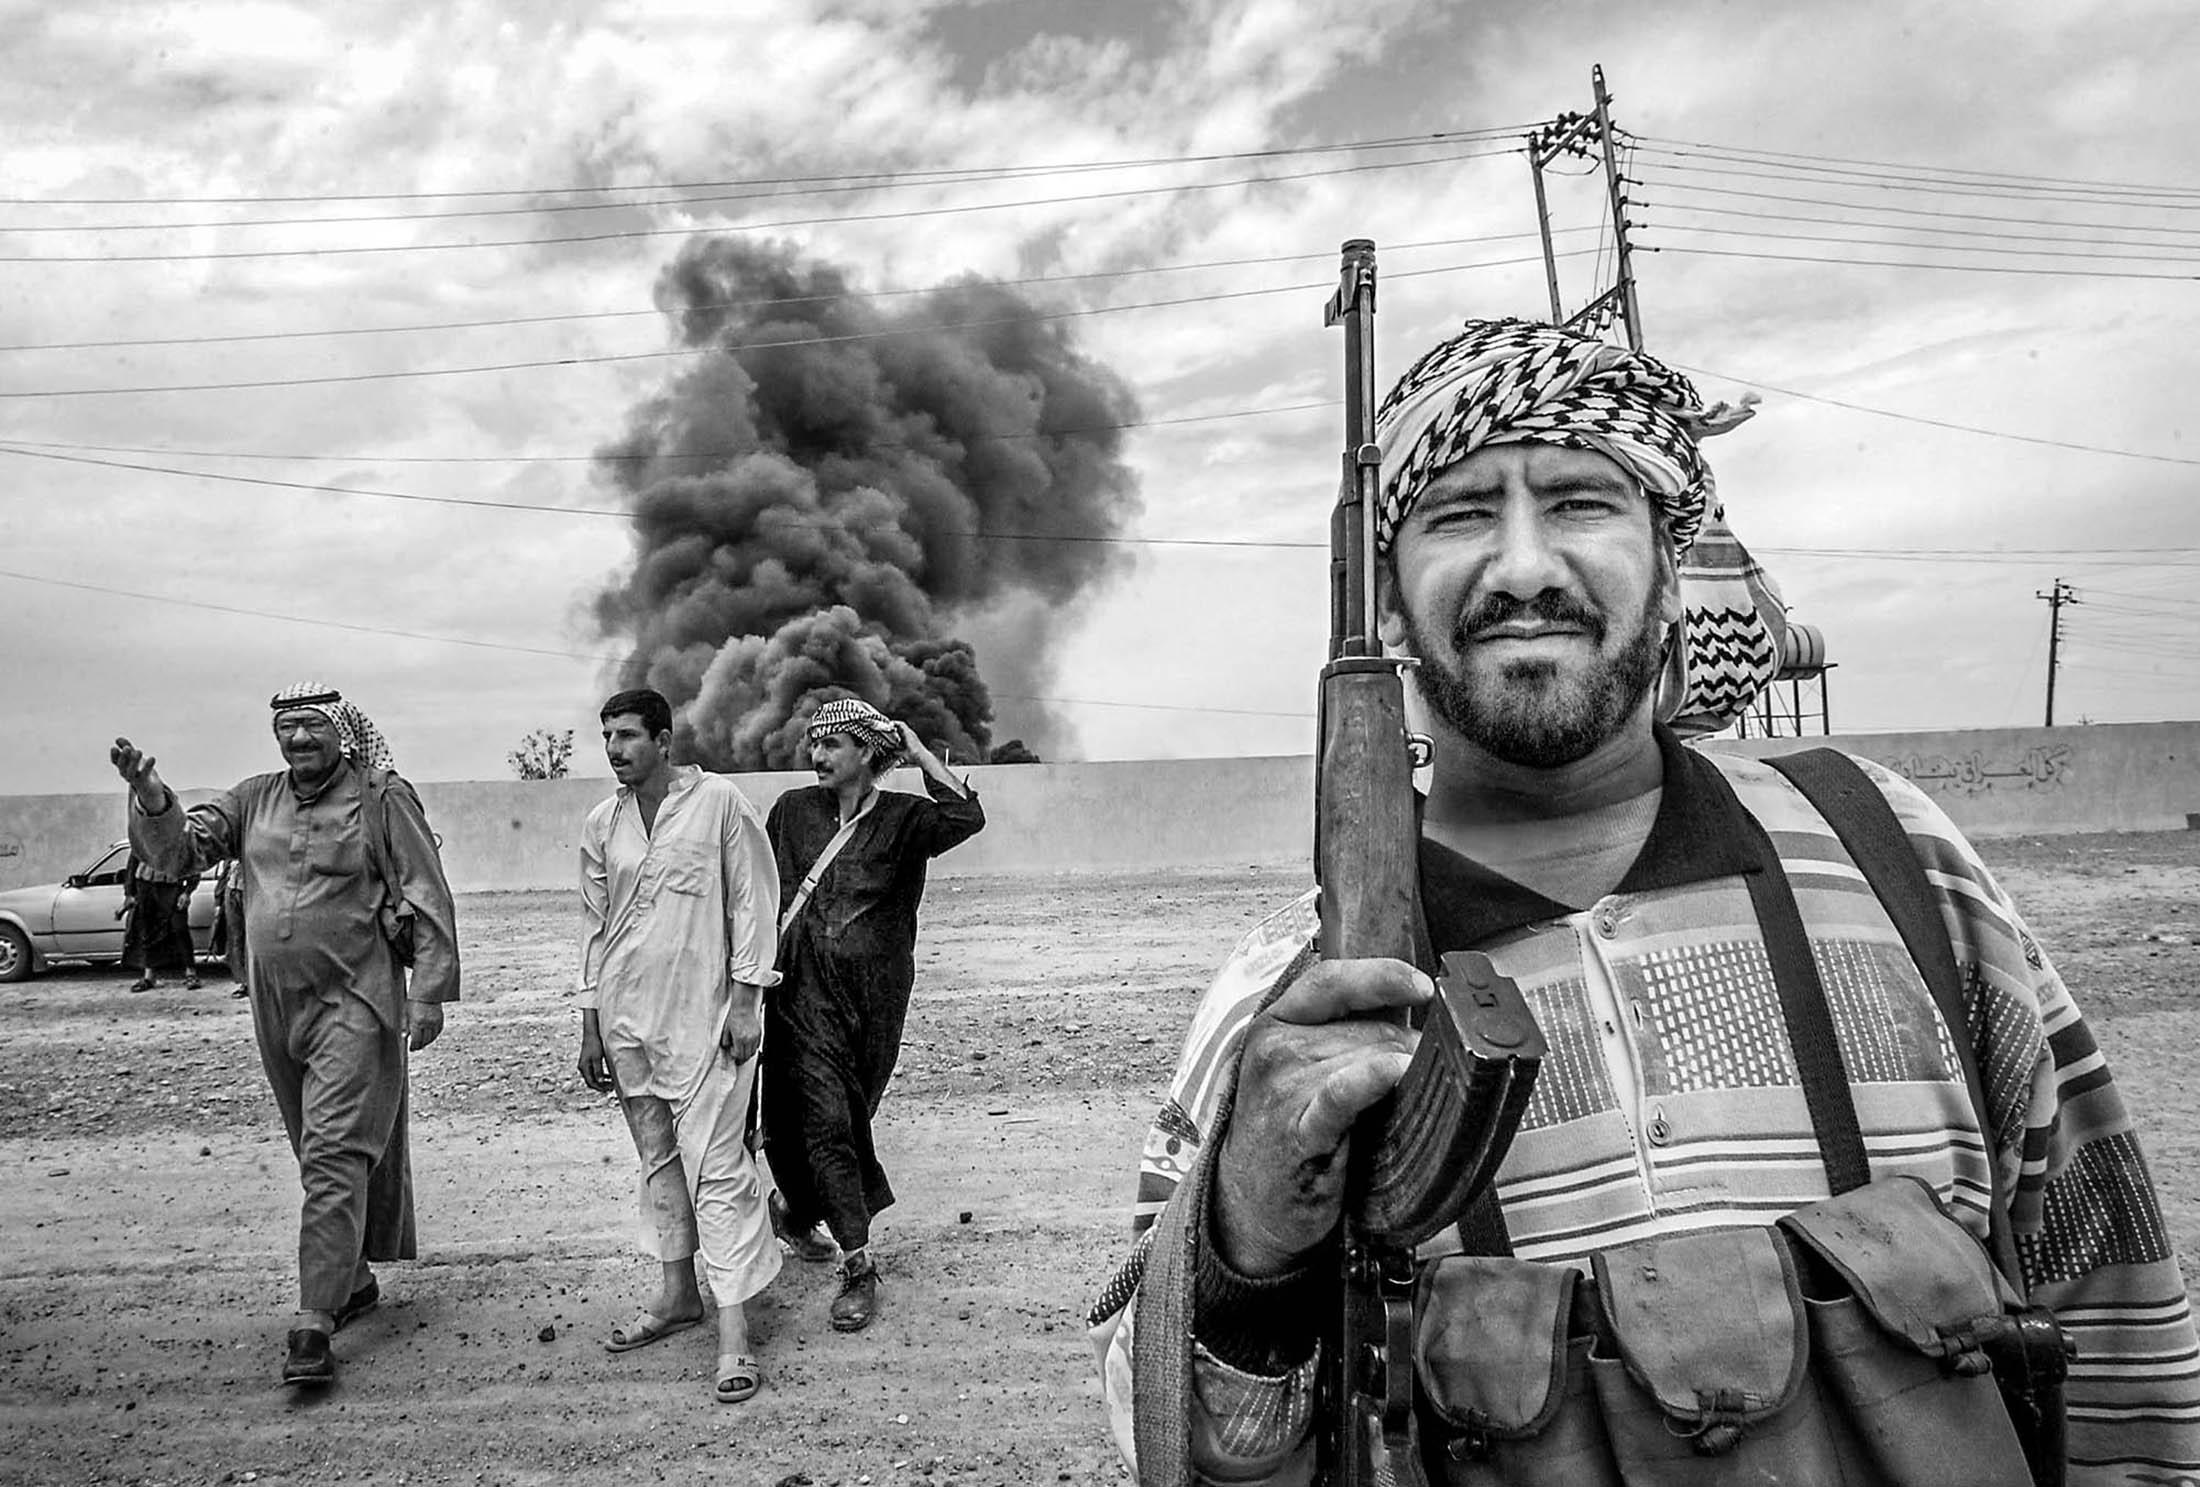 As the forces of Saddam Hussein retreat, Arab villagers near Kirkuk armed themselves, afraid of retaliation by the majority Kurds. Under Saddam Hussein's regime, Arabs were intentionally resettled in order to control Kirkuk an important city with a large oil field.